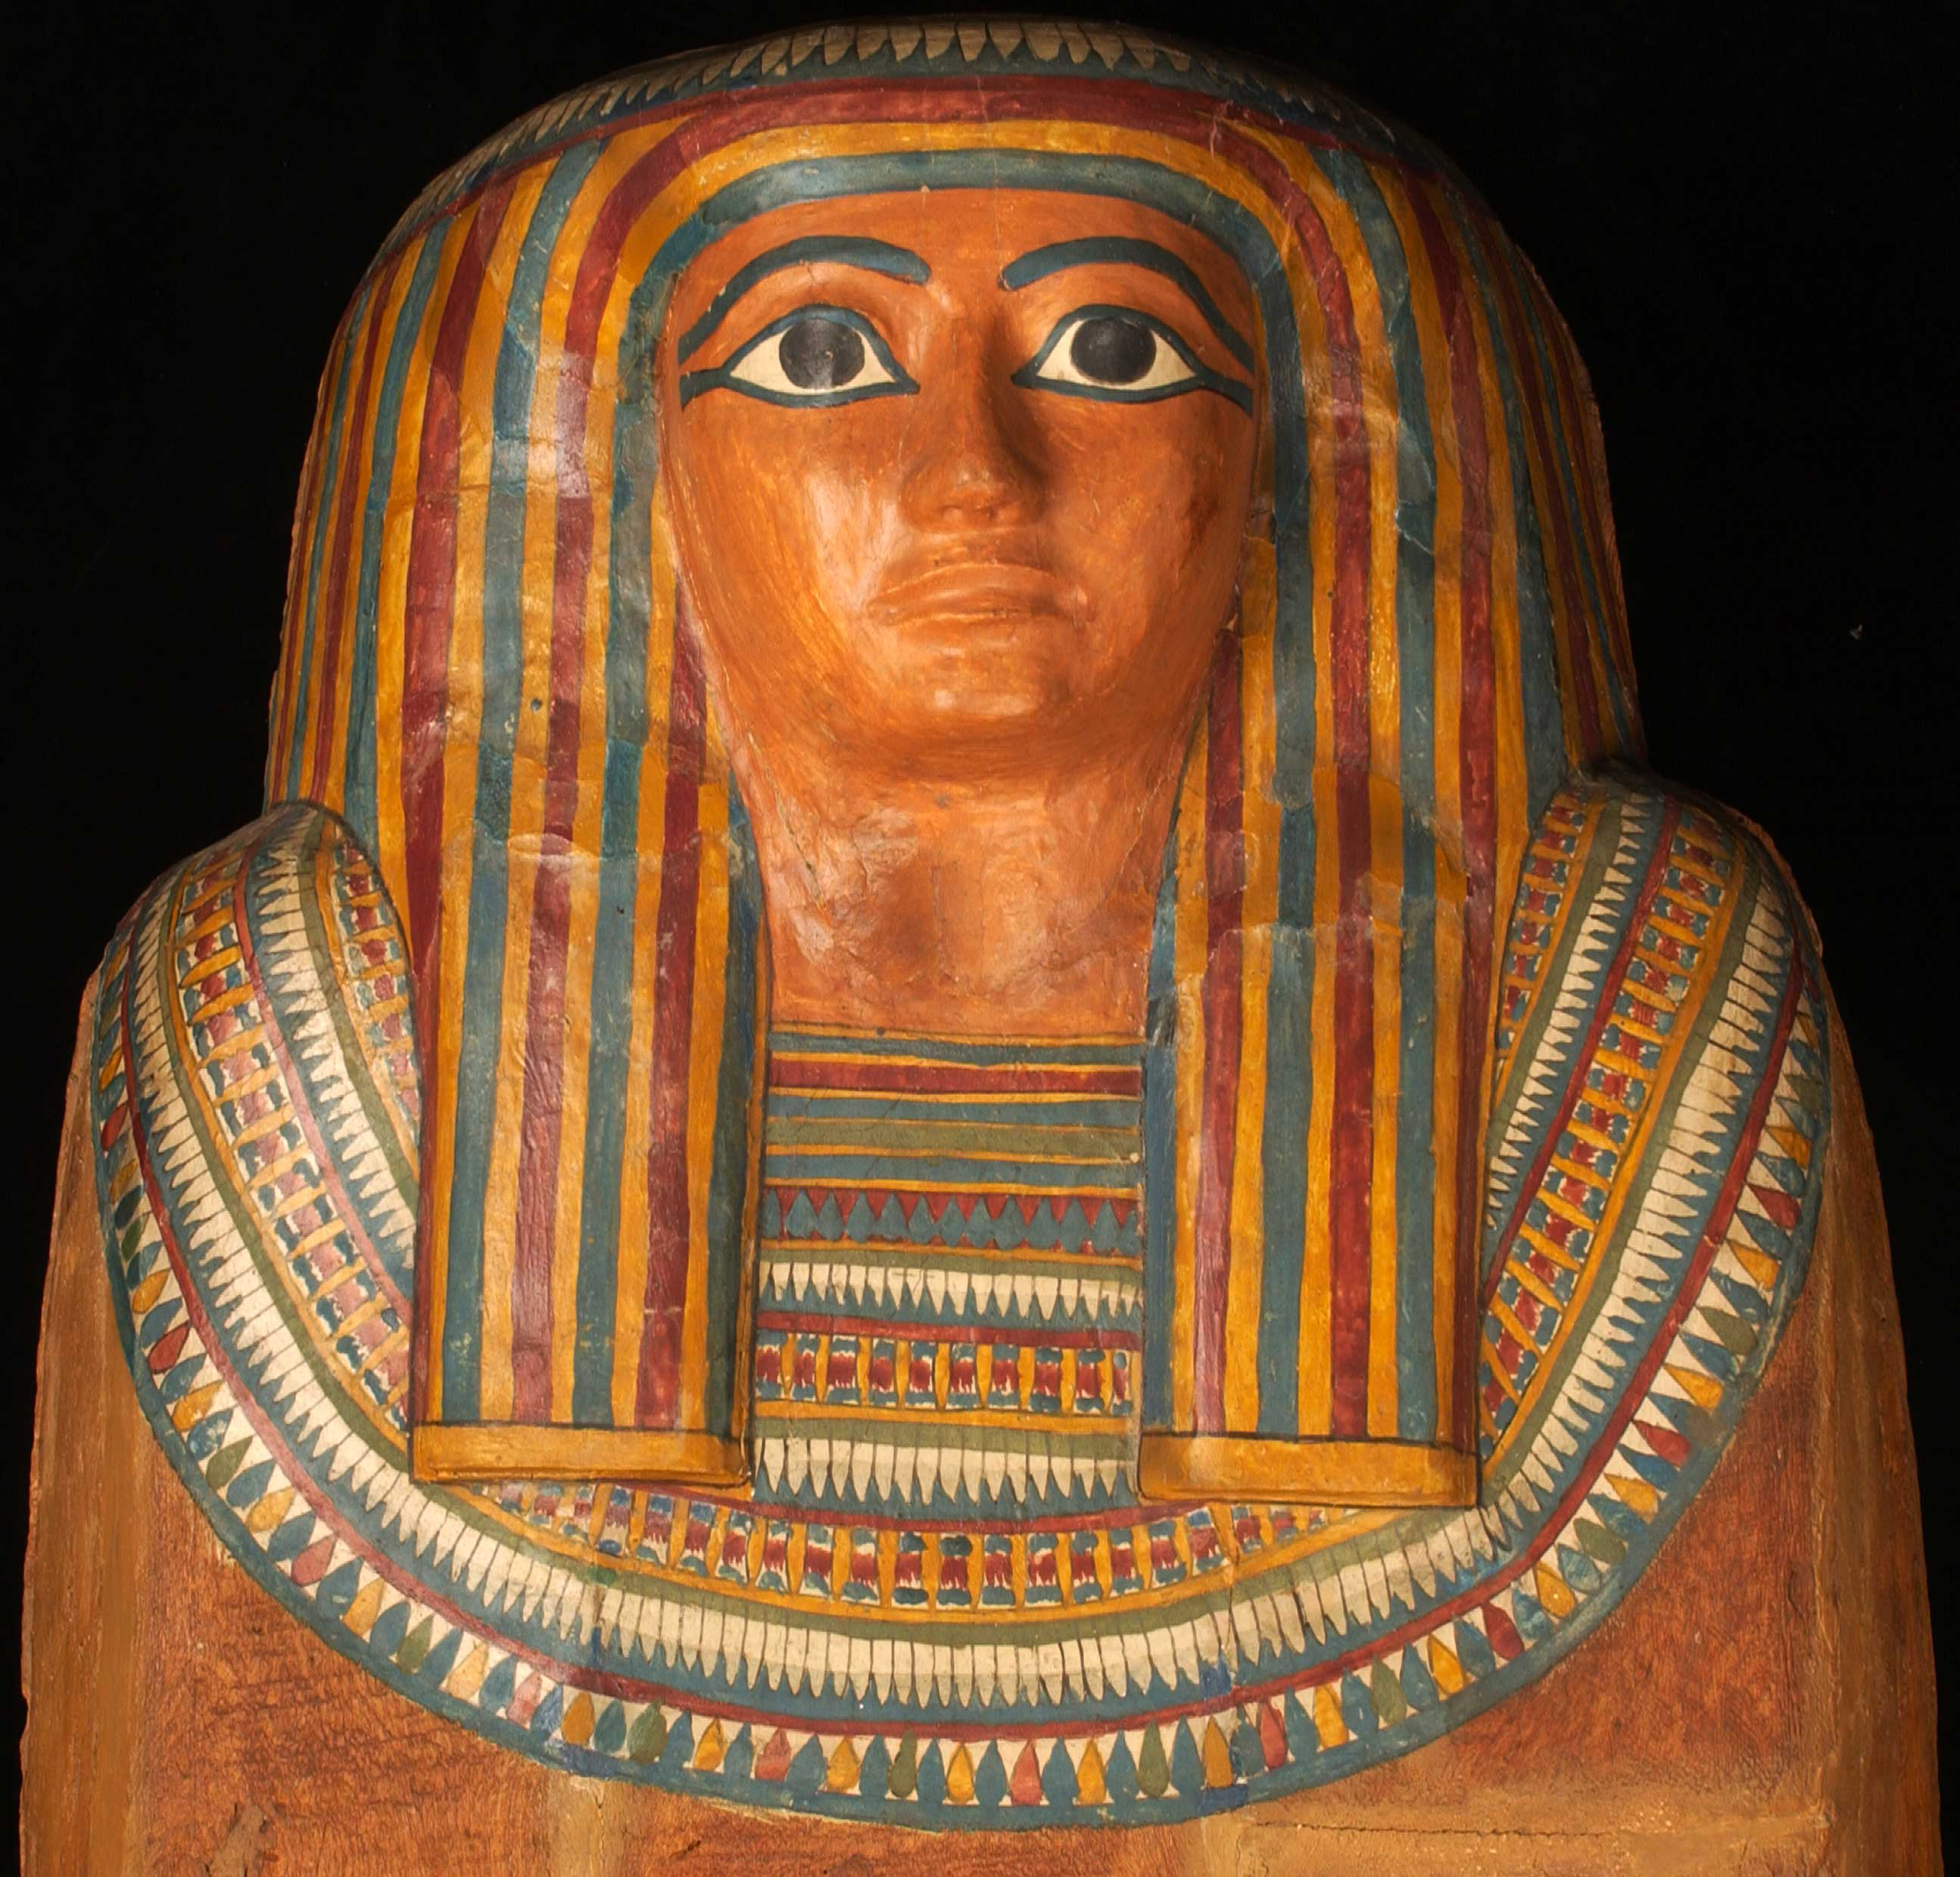 Detail of Tenkhaykhetes coffin lid